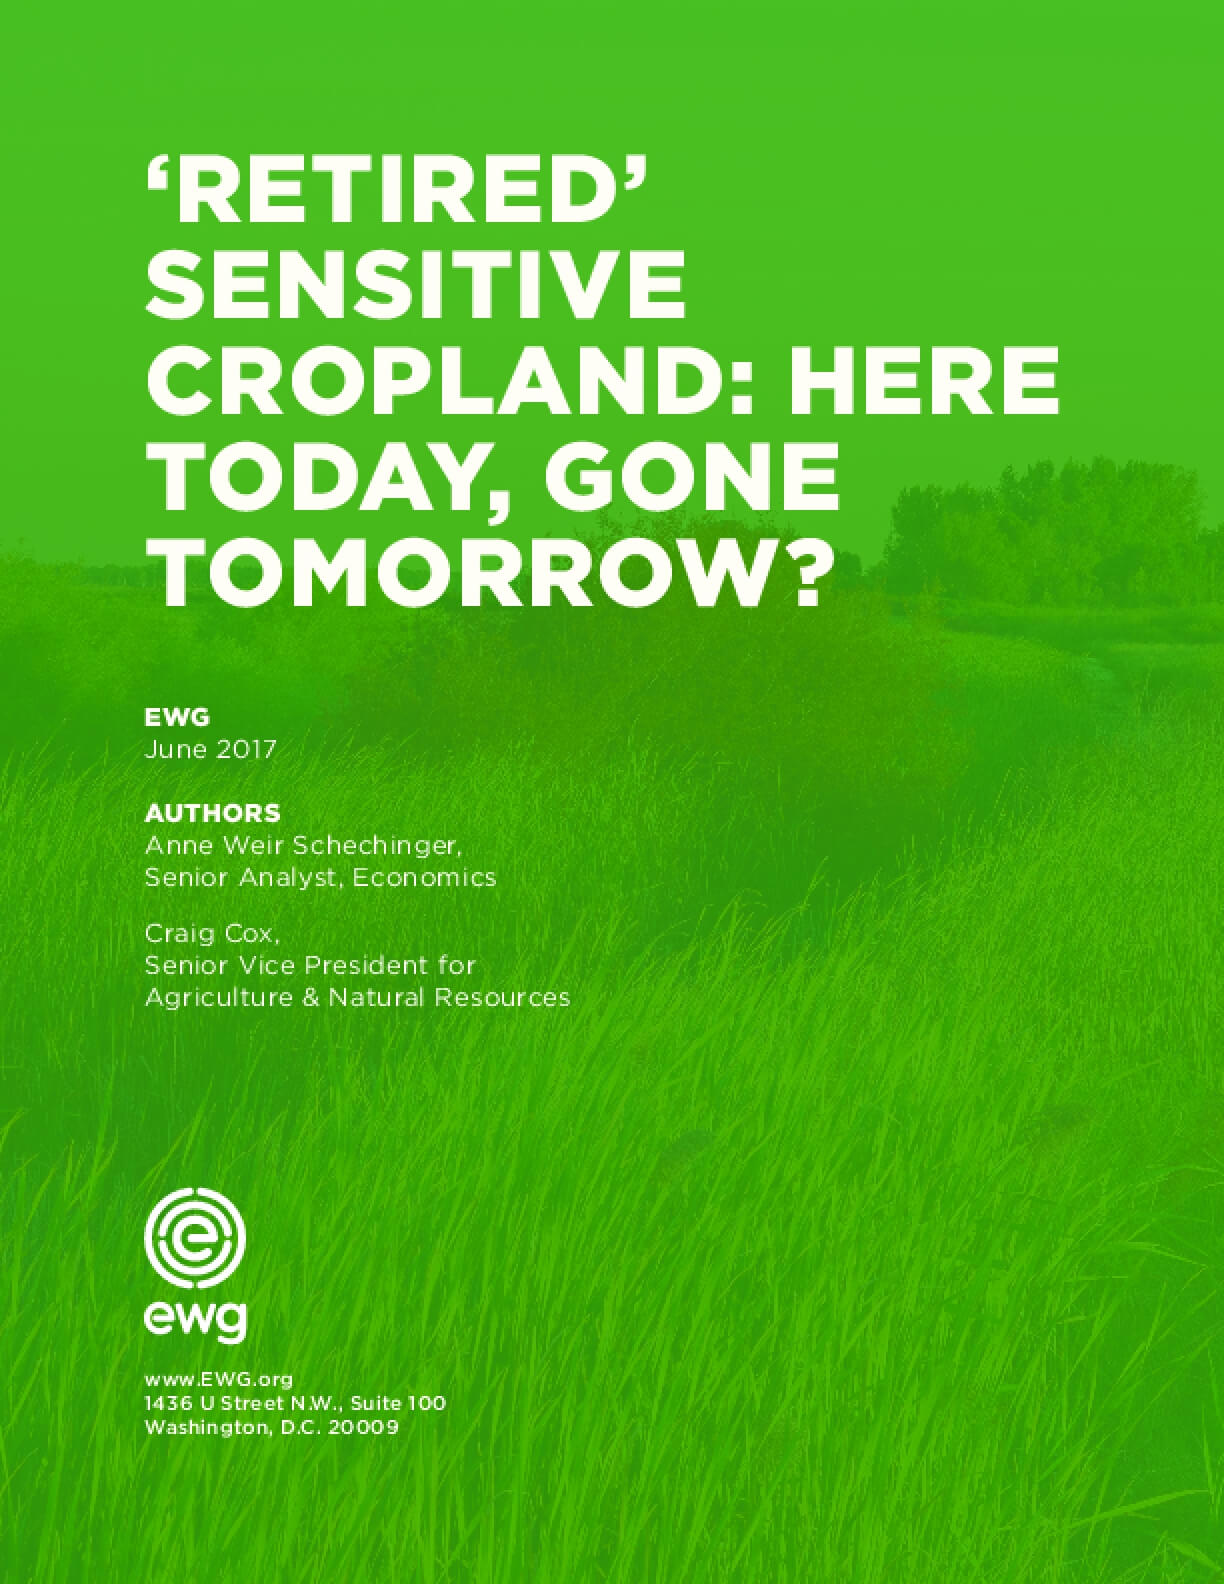 'Retired' Sensitive Cropland: Here Today, Gone Tomorrow?